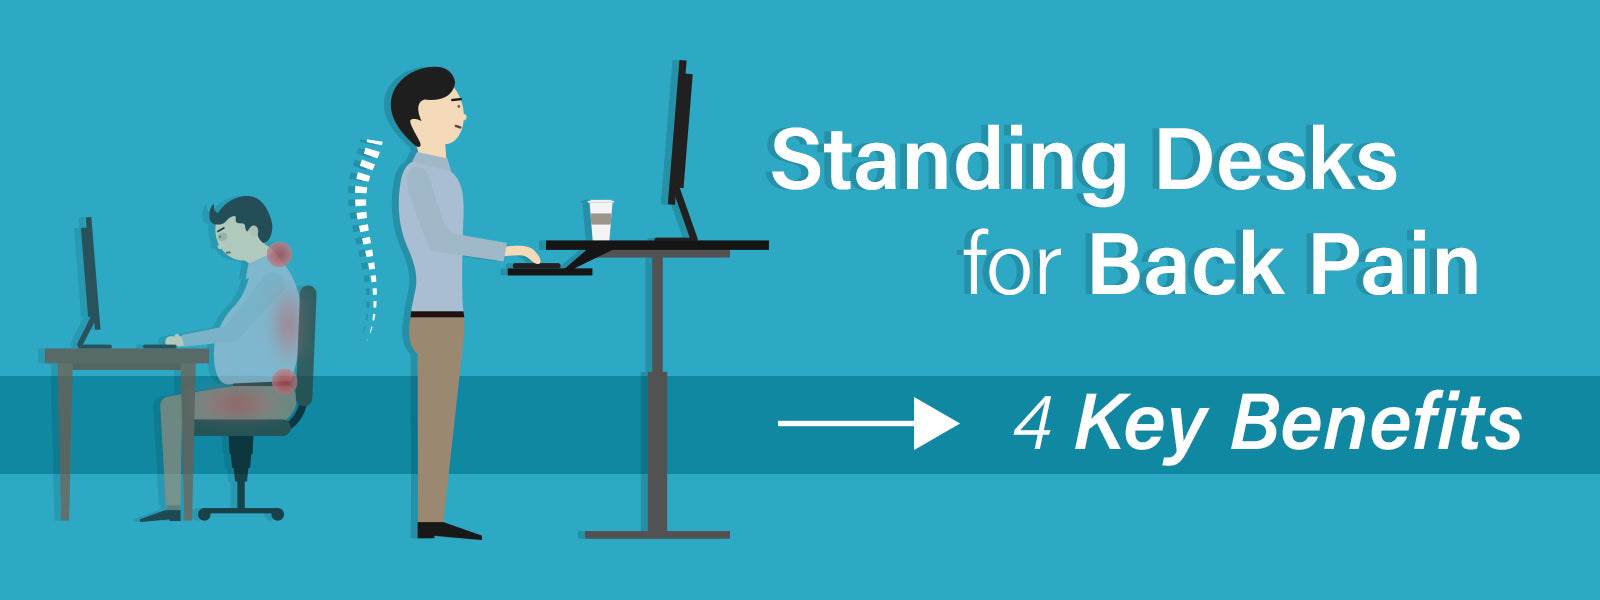 Standing Desk Back Pain